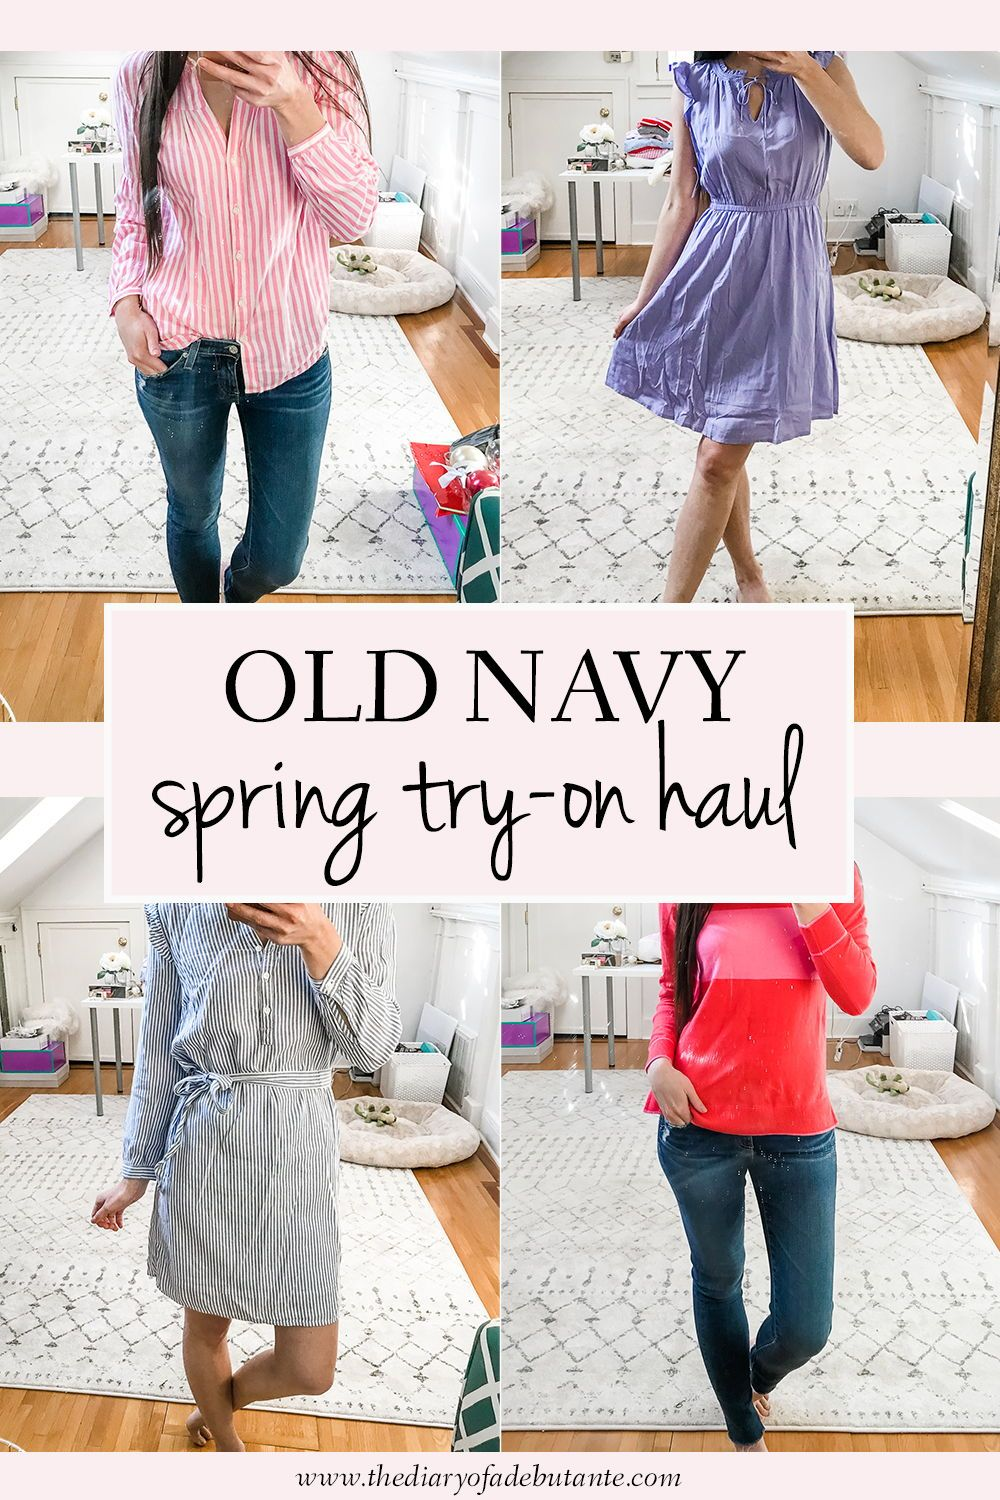 b7c53fe4caf53 The Old Navy Spring 2019 collection is to die for! So many incredible finds-